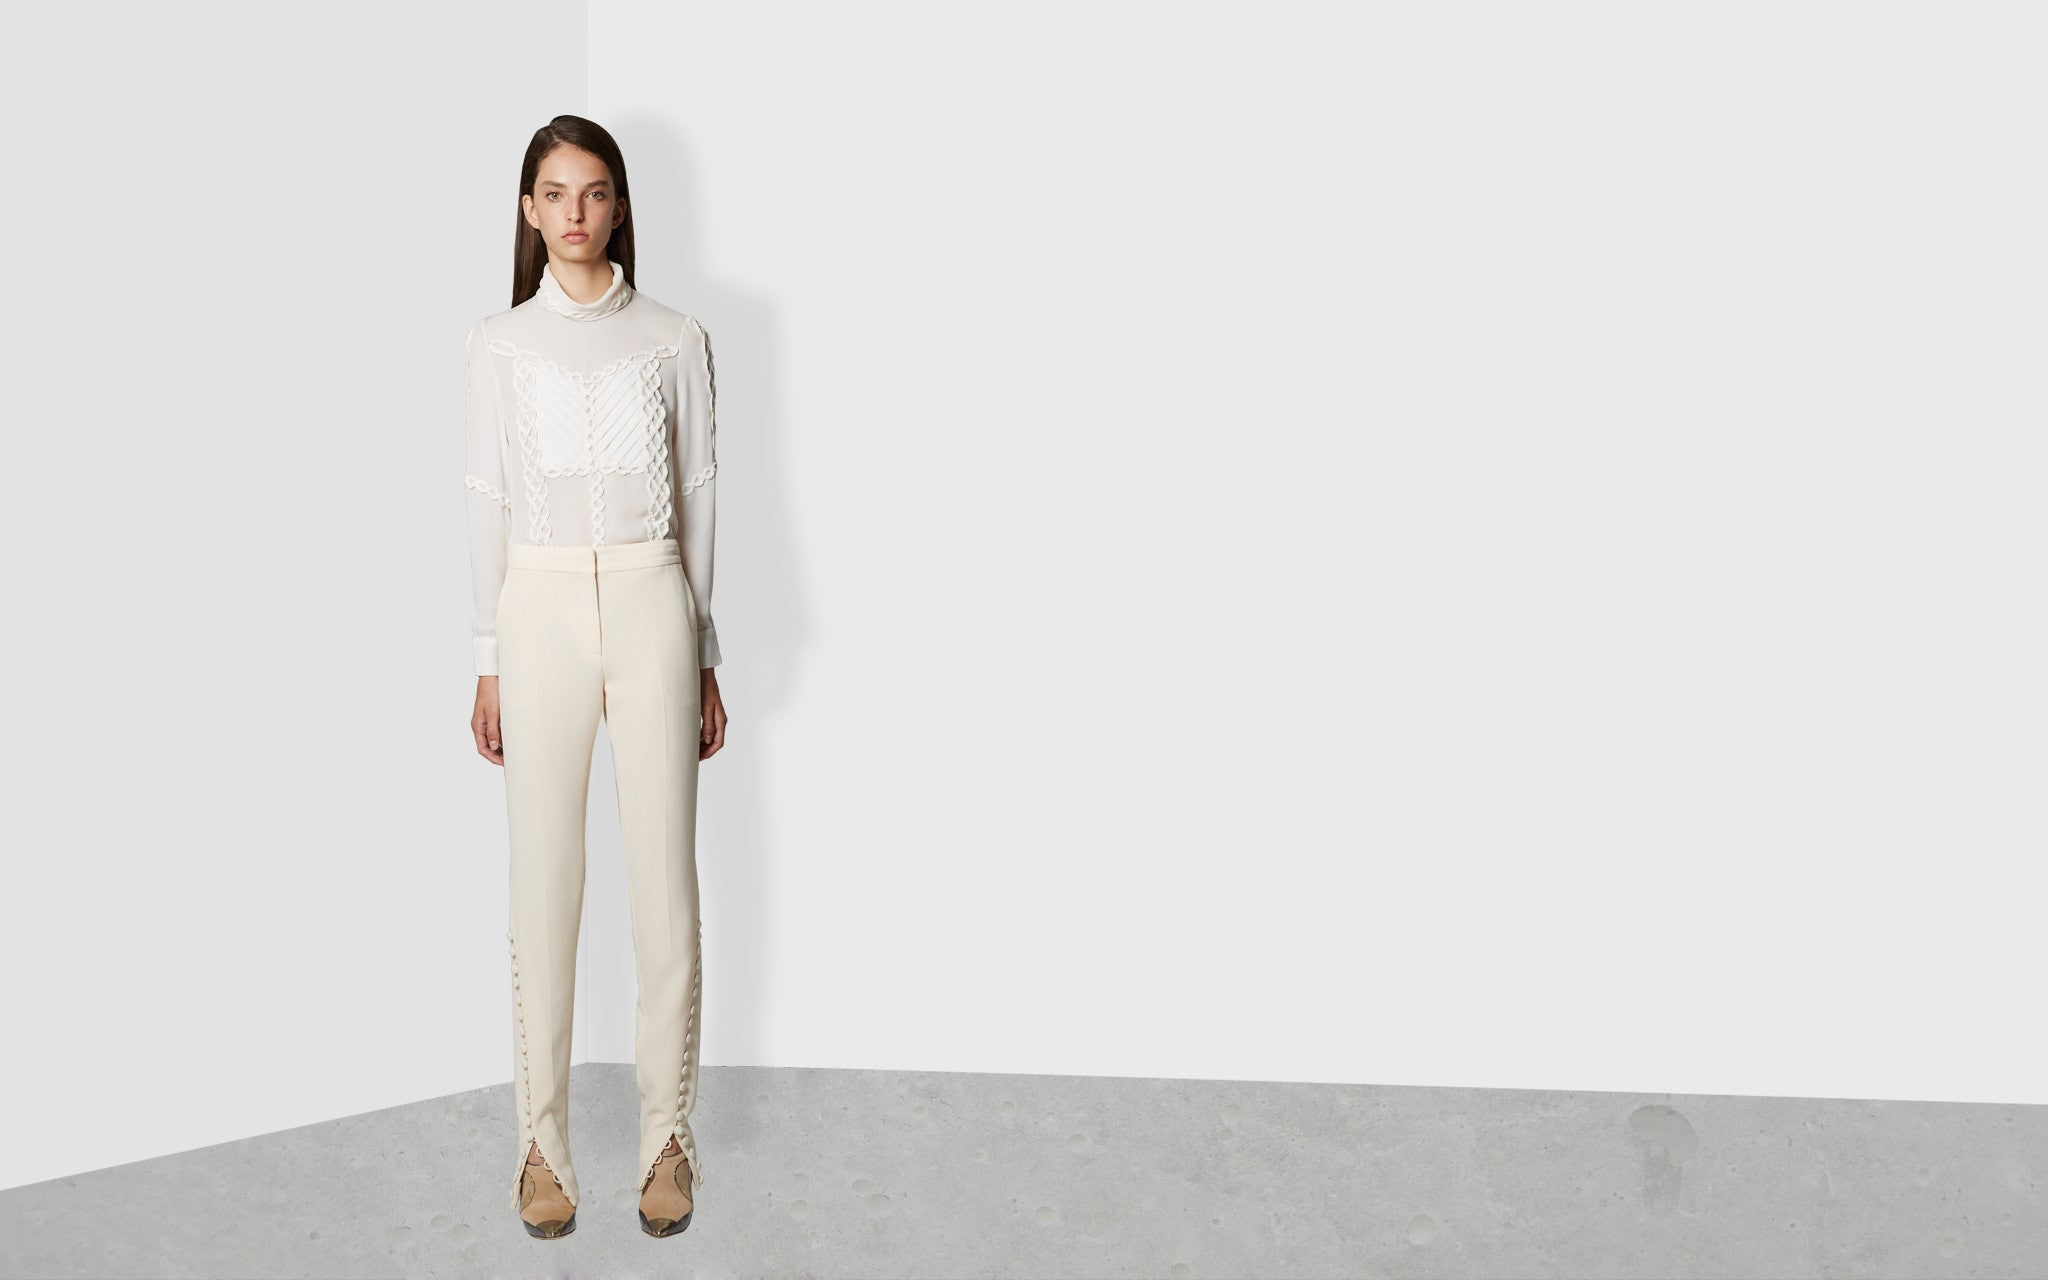 Split Hem Pants With Button Detail in Ivory